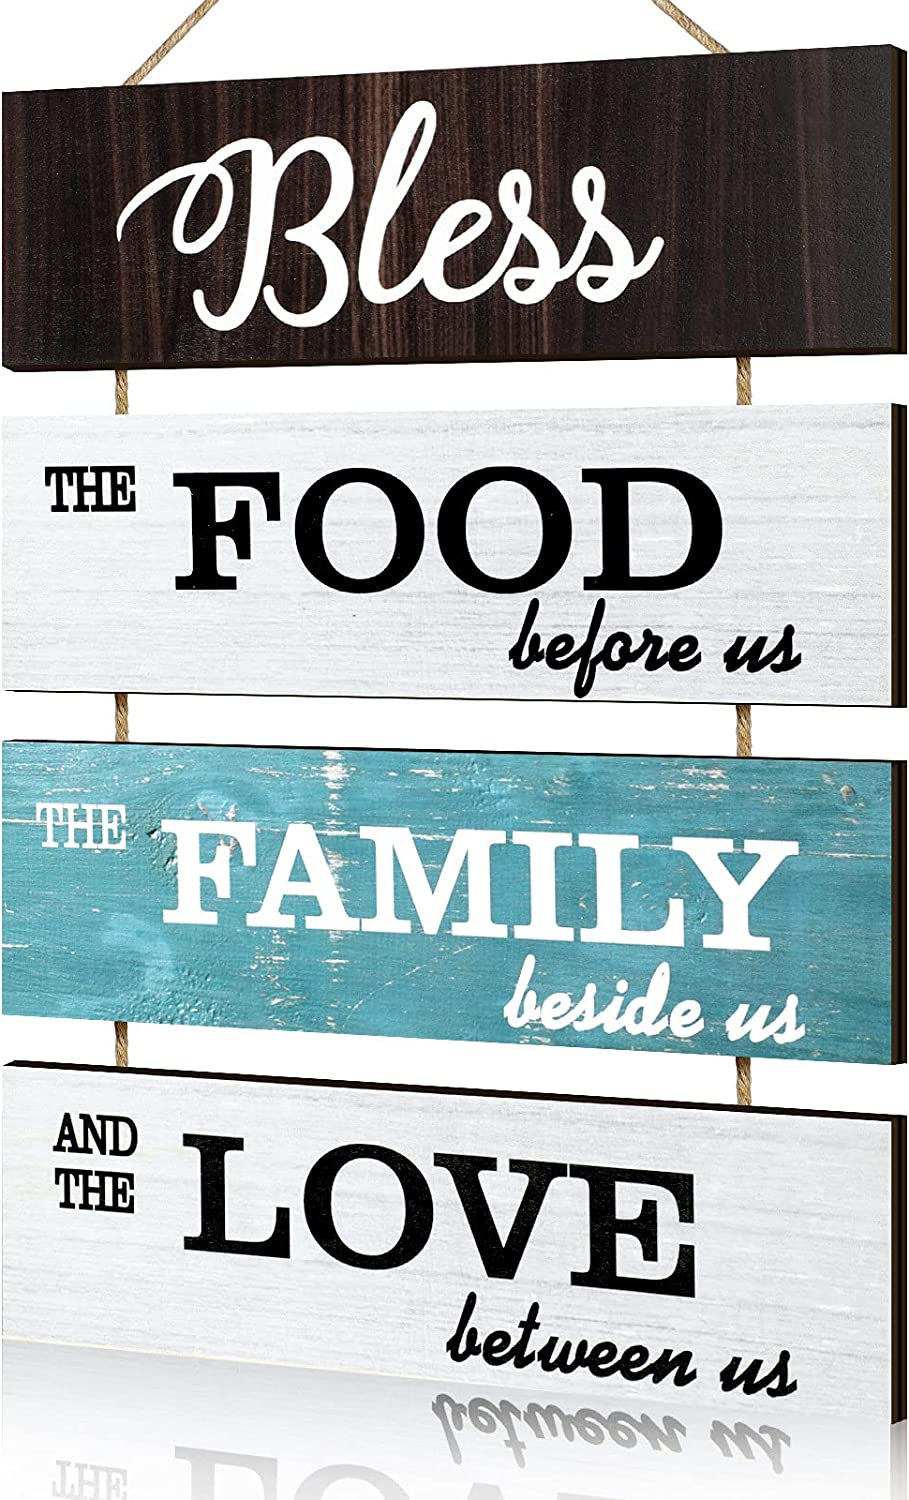 Jetec Bless Hanging Wall Sign, Large Hanging Wall Sign, Rustic Wooden Family Food Love Sign Decor, Hanging Wood Wall Decoration for Living Room Bedroom Outdoor (Modern Color)